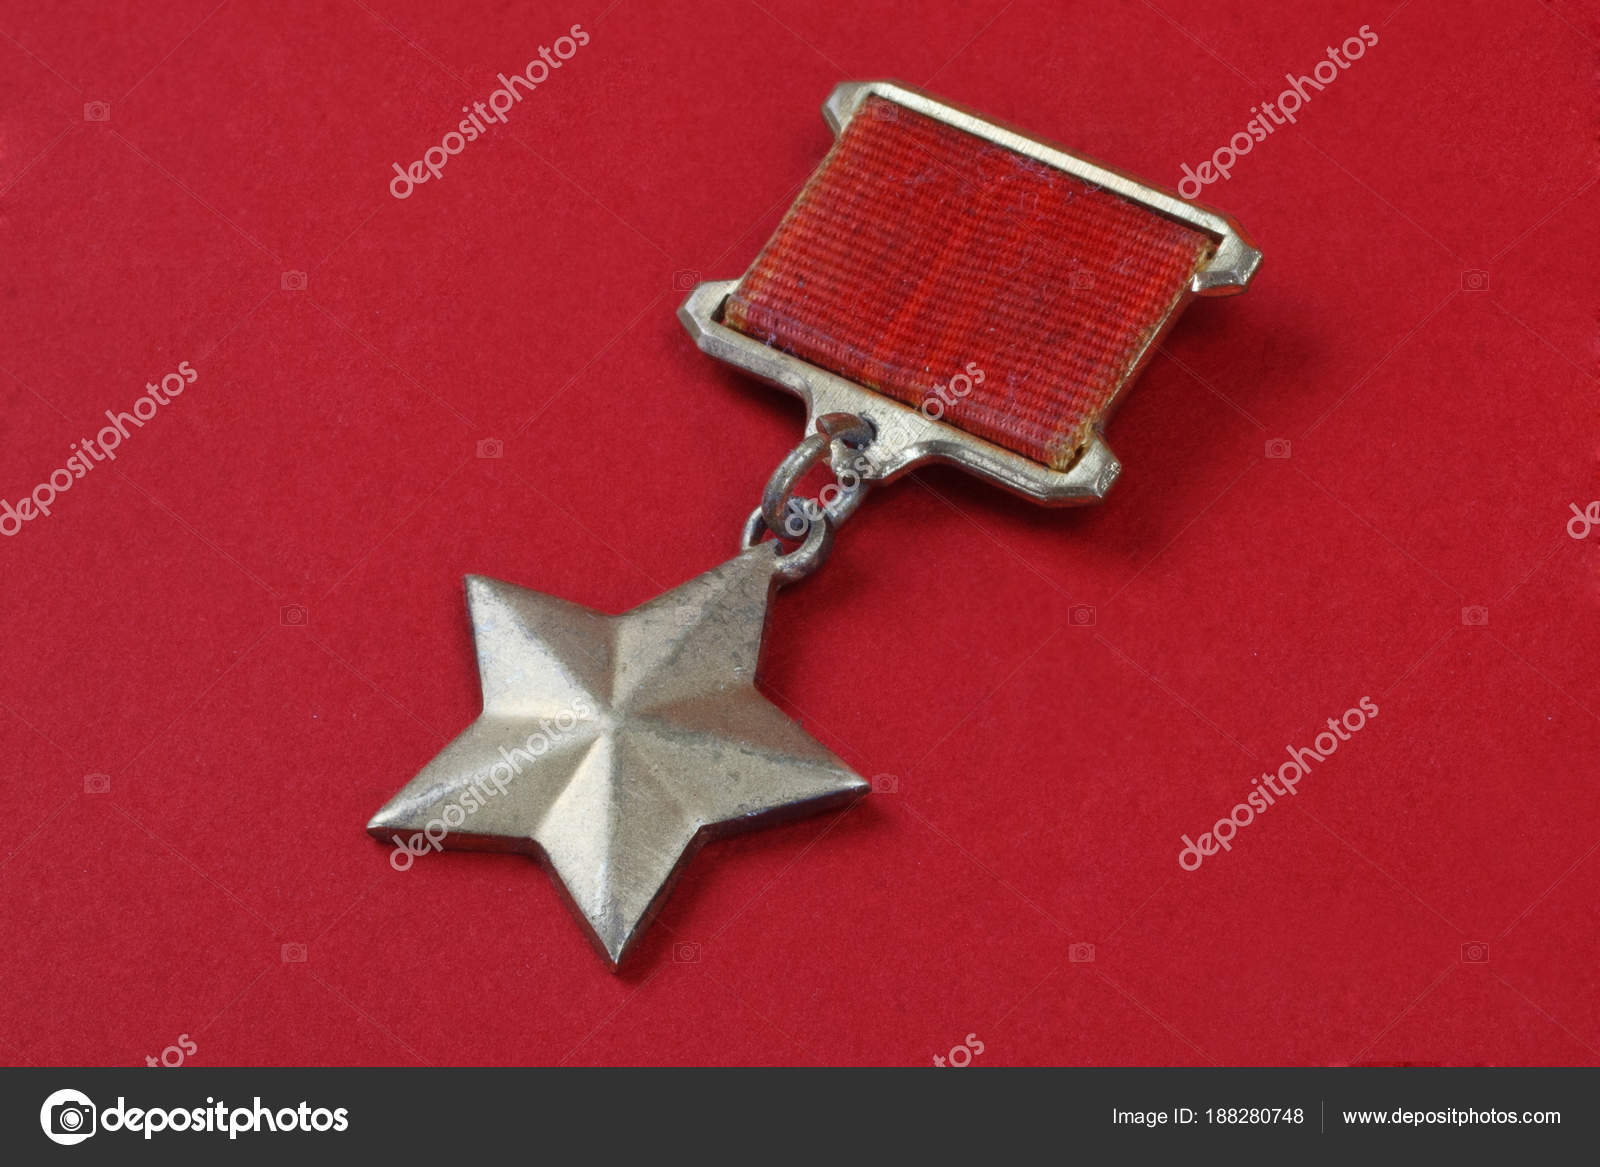 The title of Hero of the Soviet Union was awarded posthumously to General Karbyshev (28 fe 9